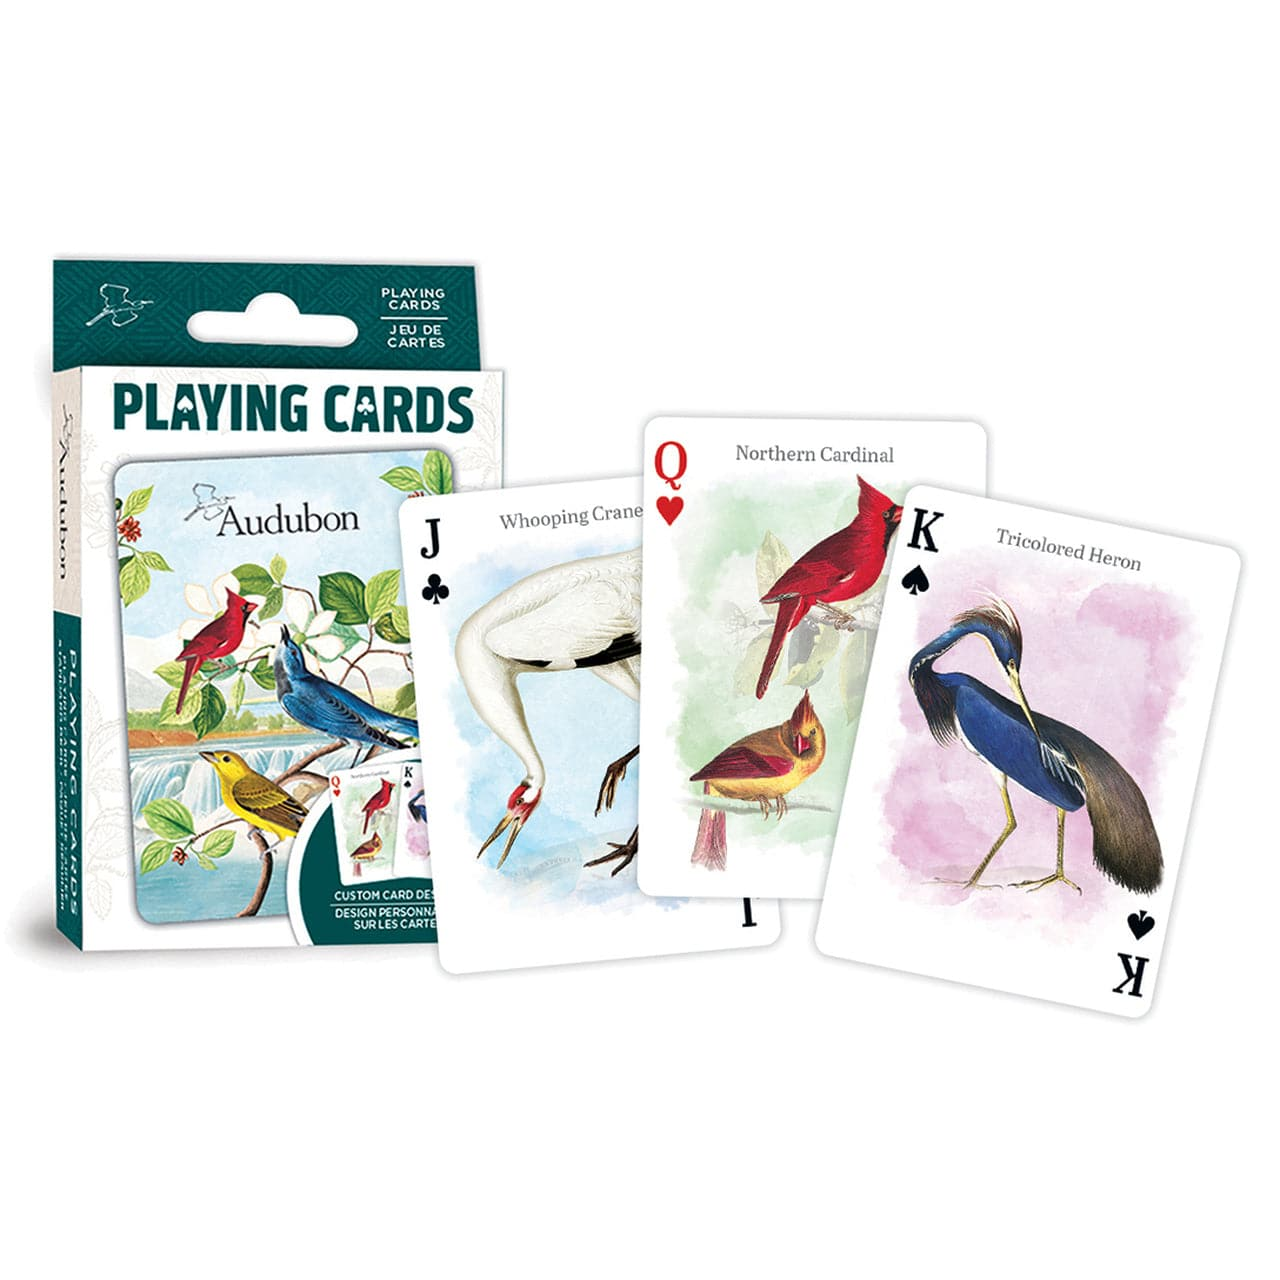 Audubon - Playing Cards